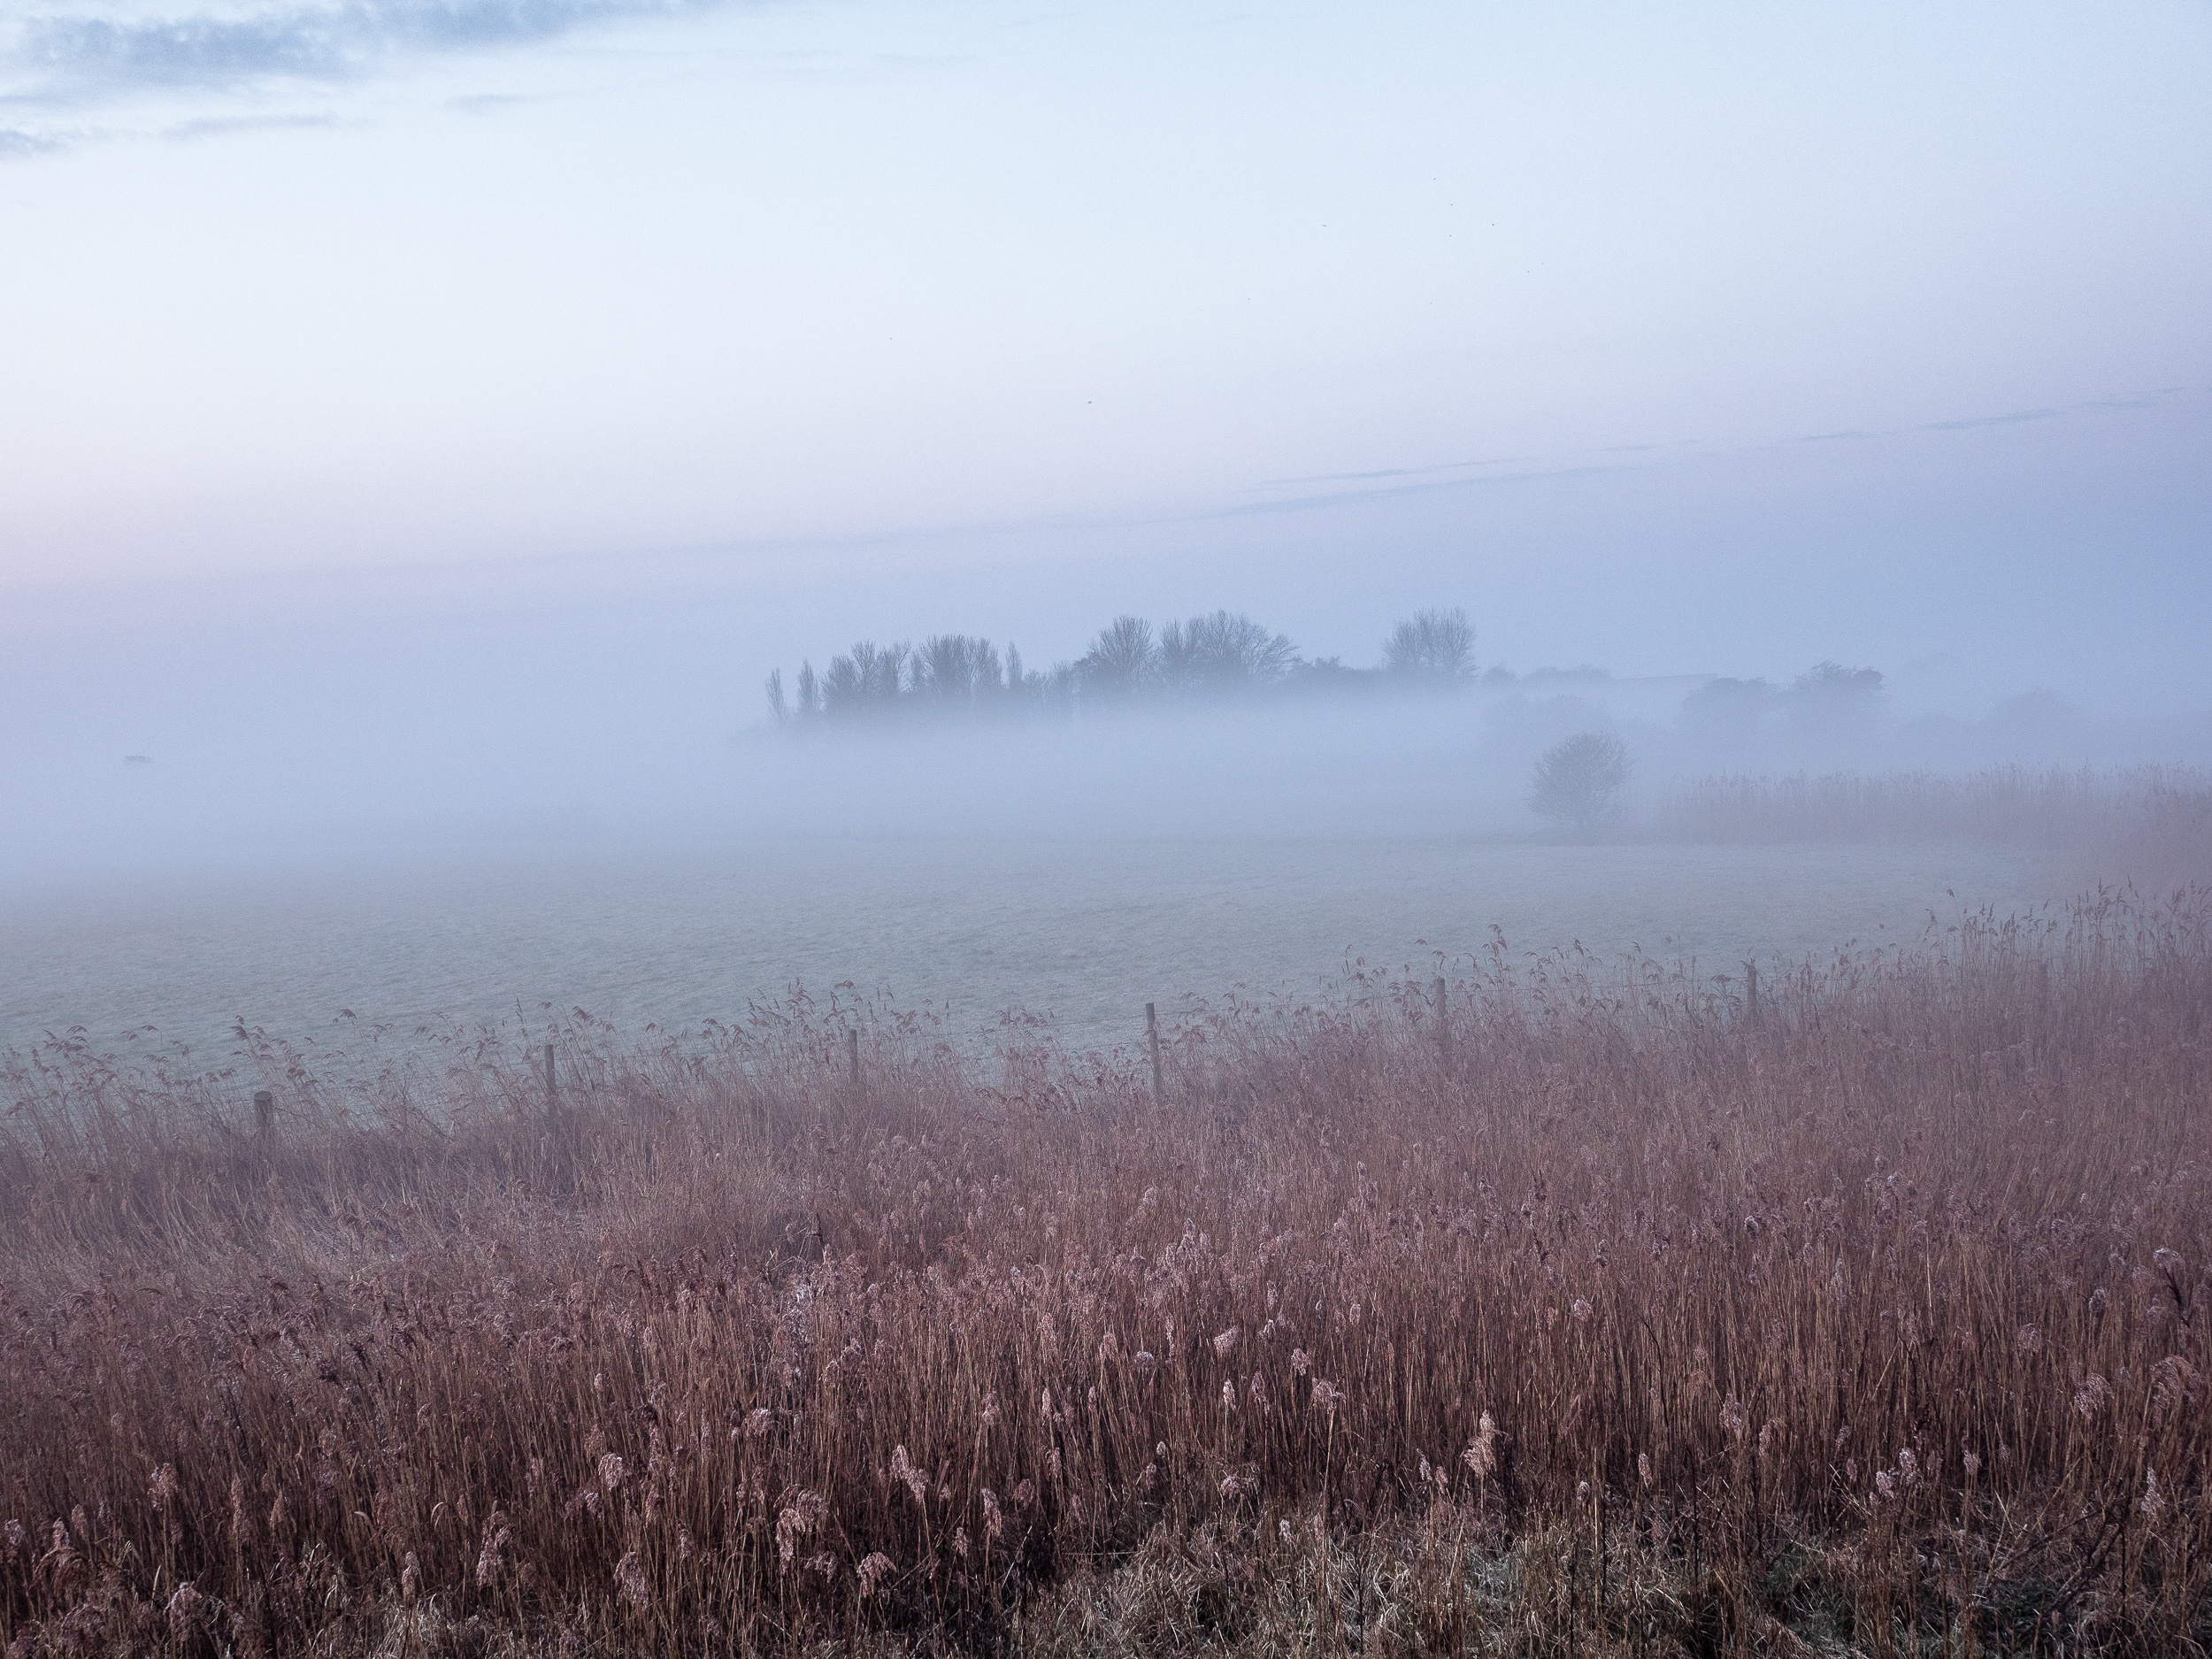 - Turning the other way we enjoy the view to the south-east with a low sun defining the frost on the reeds.